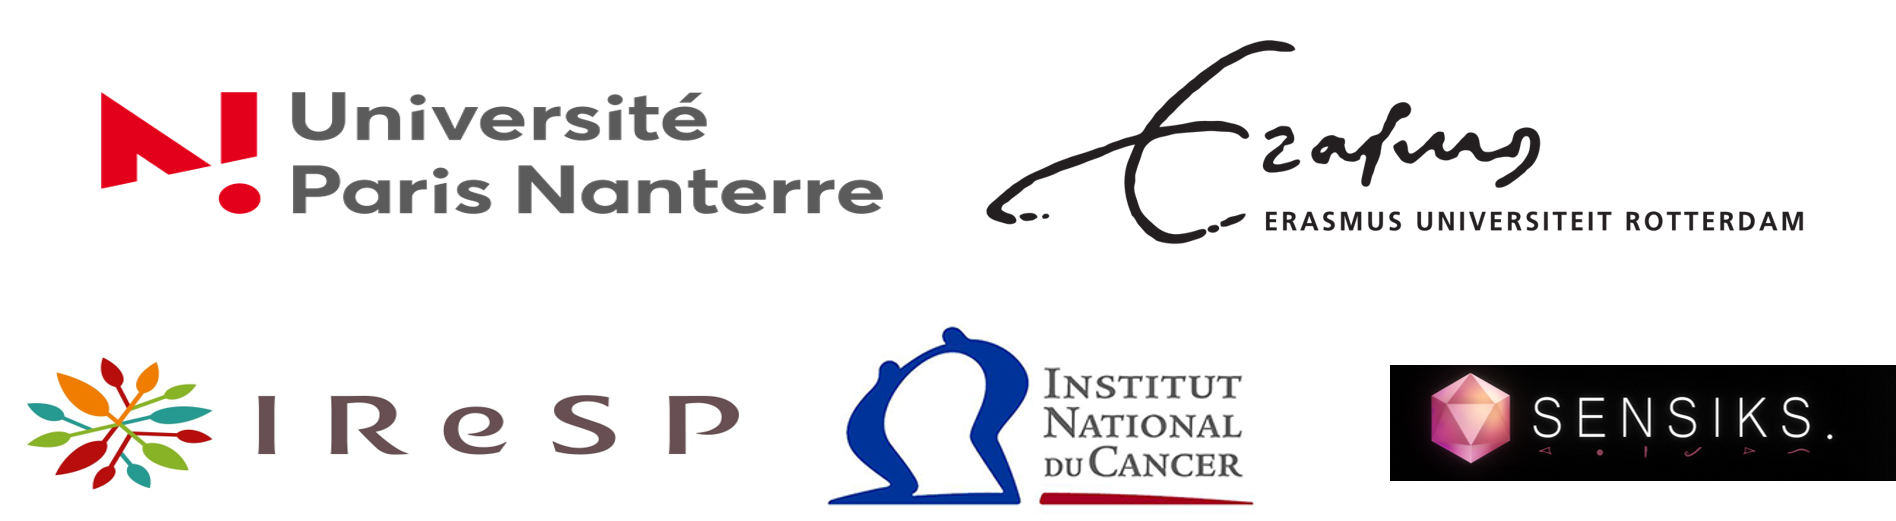 Enhance tobacco health messages against addiction with sensory reality -  funded by the French Institute for Public Health Research (IREsP) and National Cancer Institute (INCa).